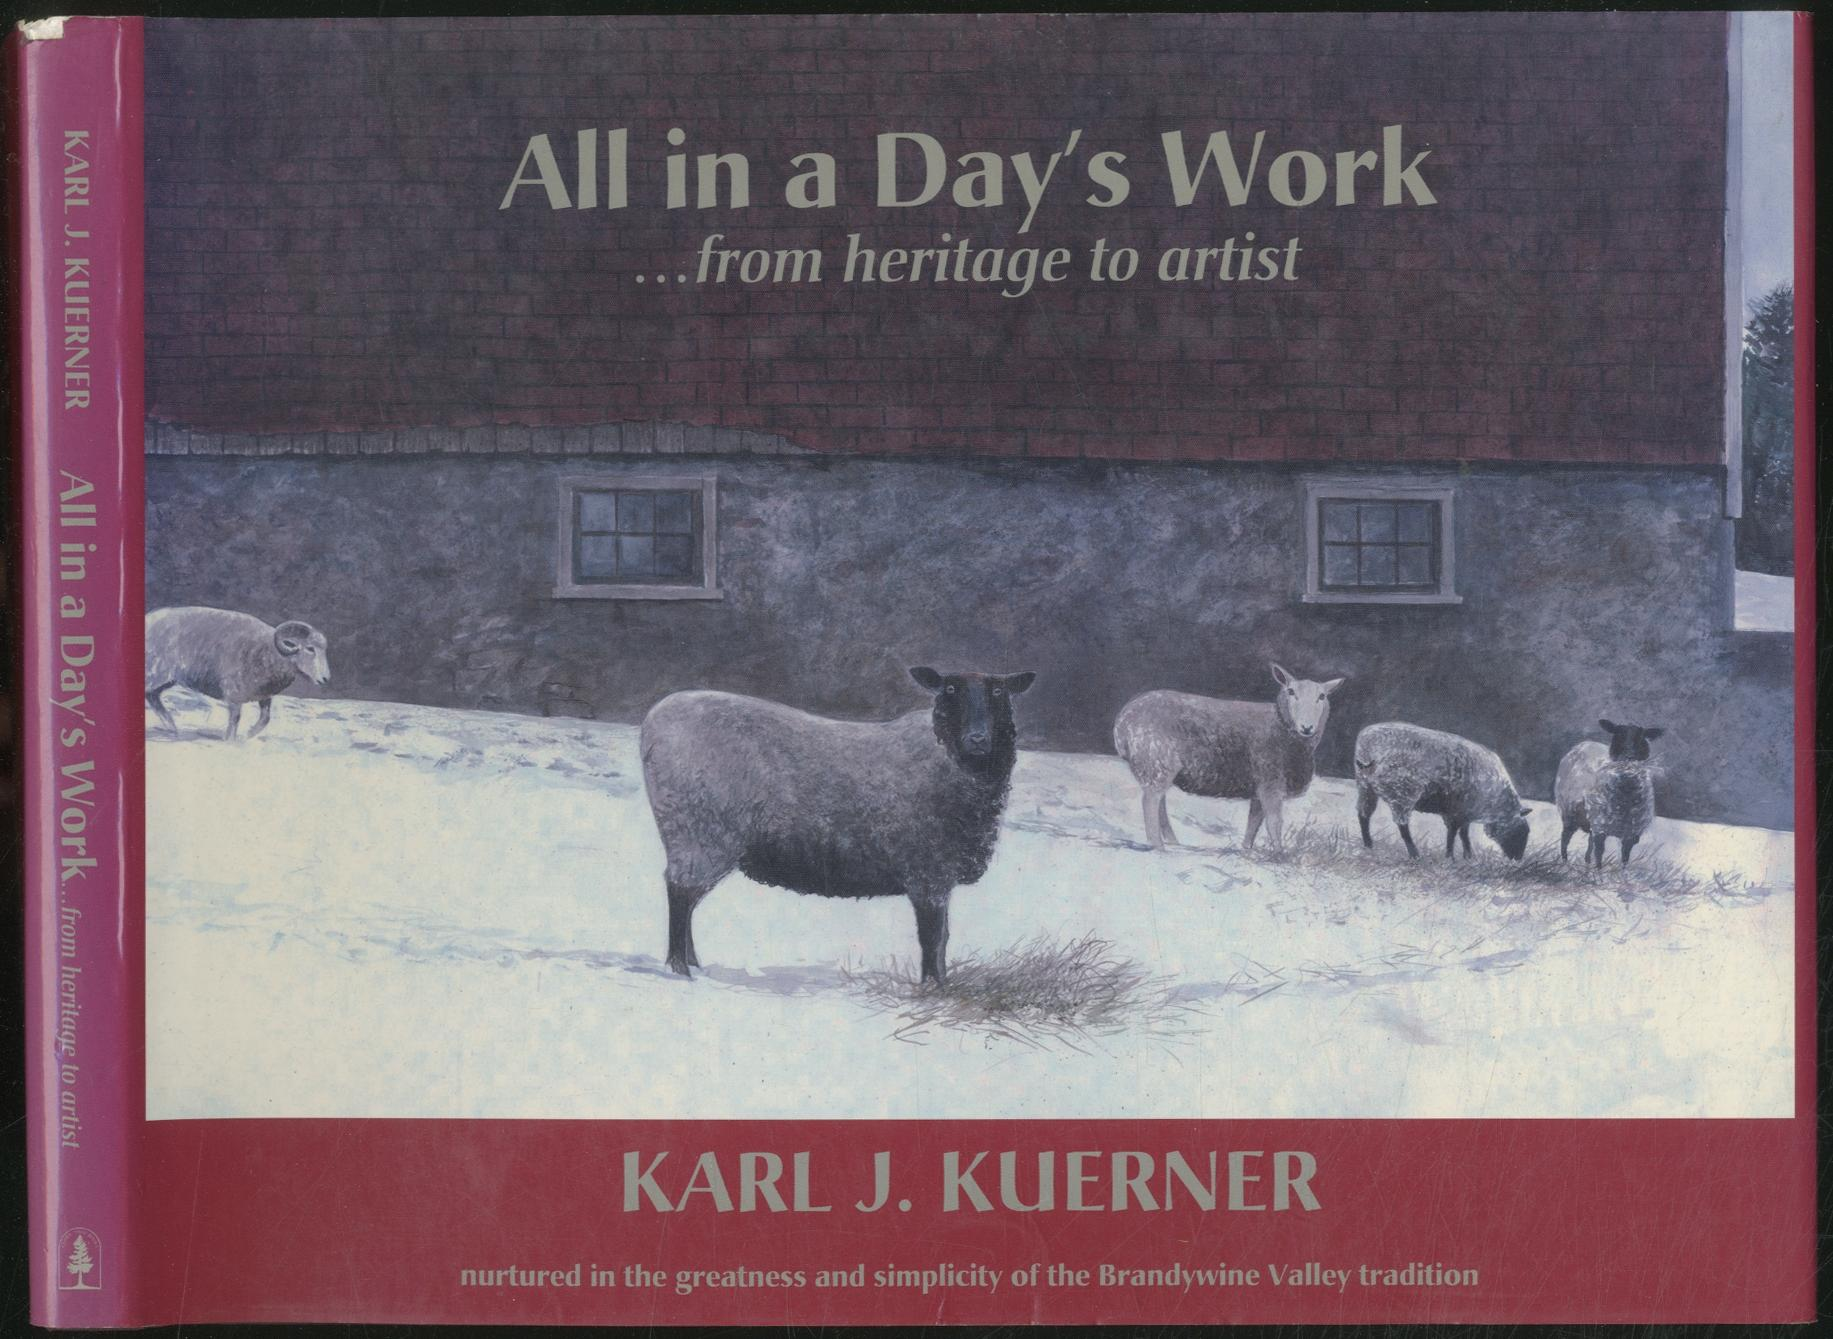 All_in_a_Days_Work_from_Heritage_to_Artist_KUERNER_Karl_J_Très_bon_Couverture_rigide